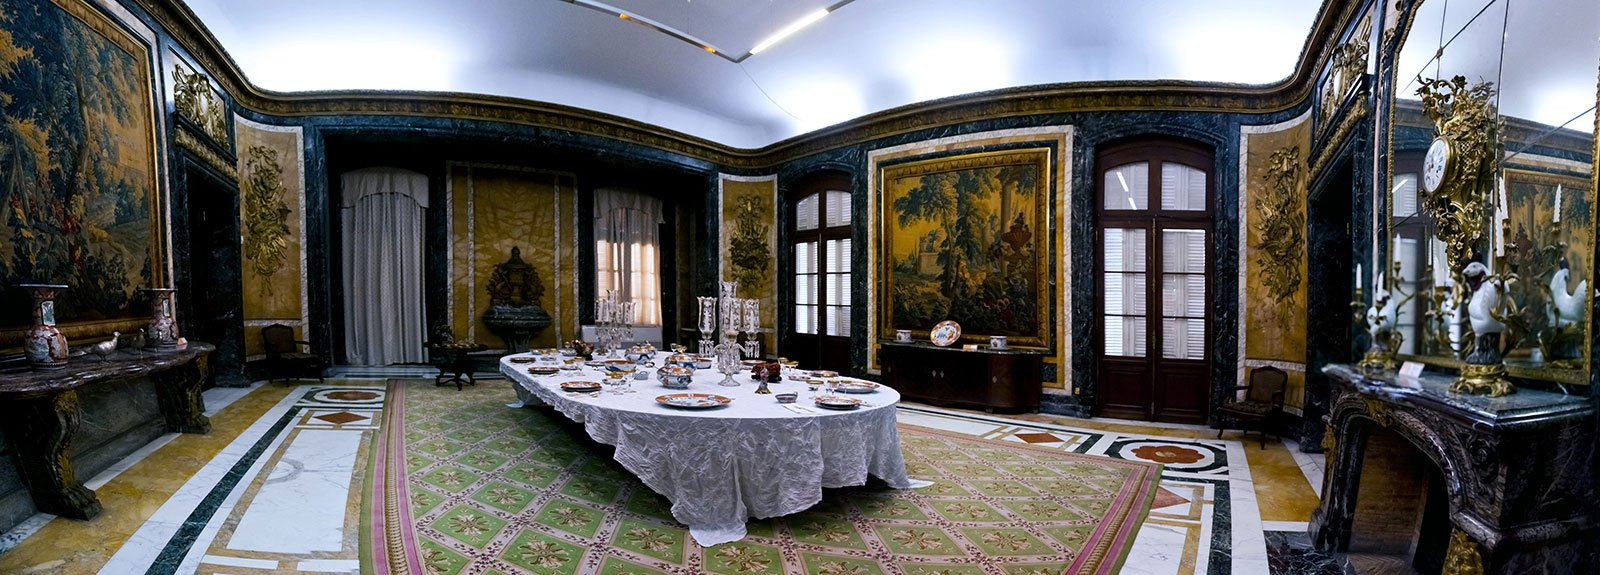 Large dinneroom with white tablecloth in the center at decorative arts museum